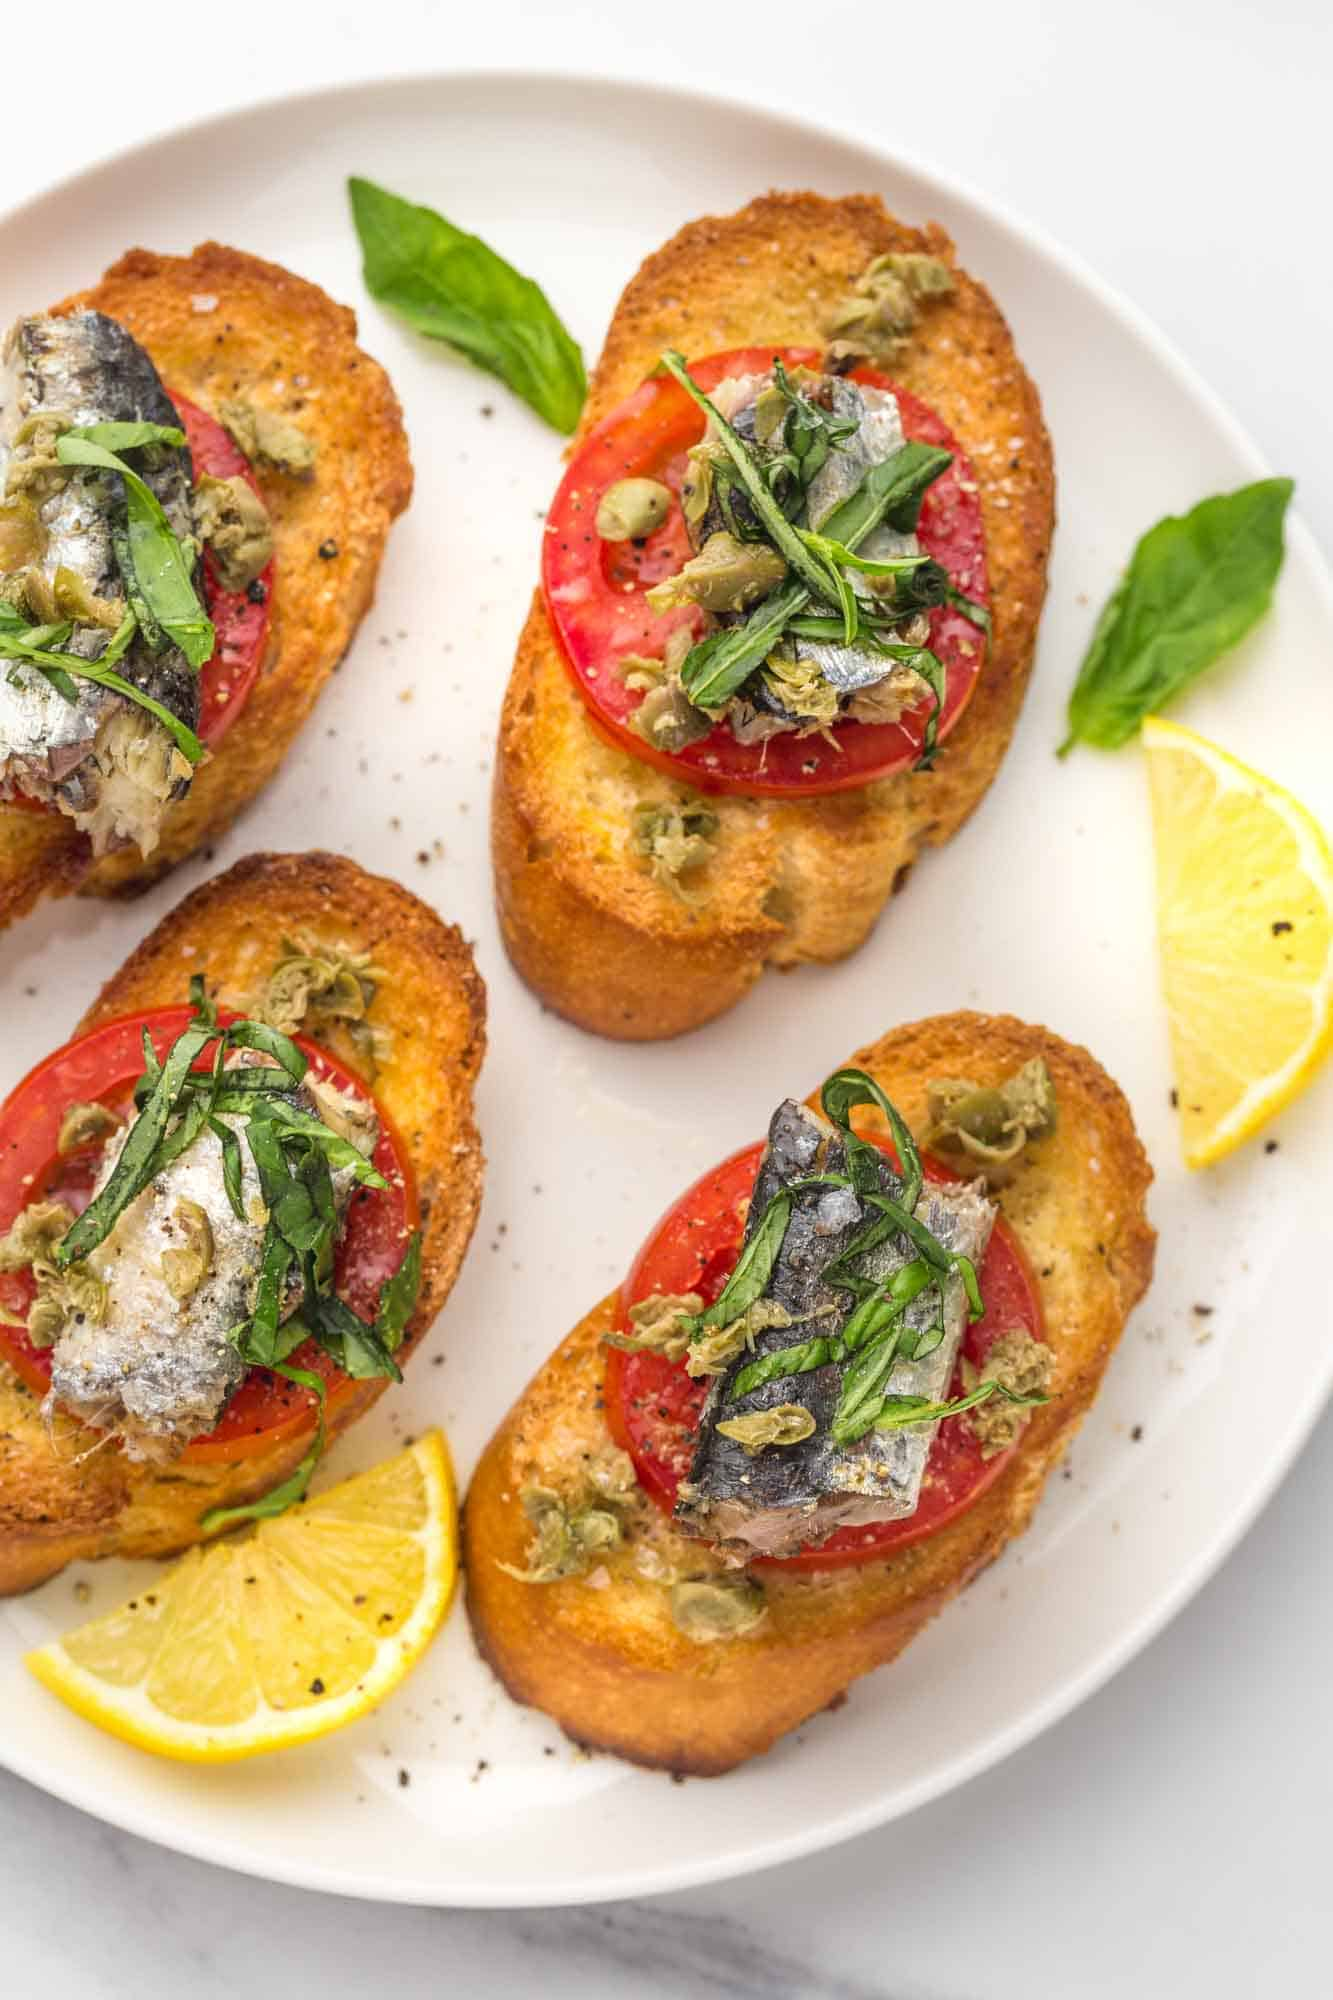 Four sardine toasts on a white plate with fresh basil leaves and lemon slices